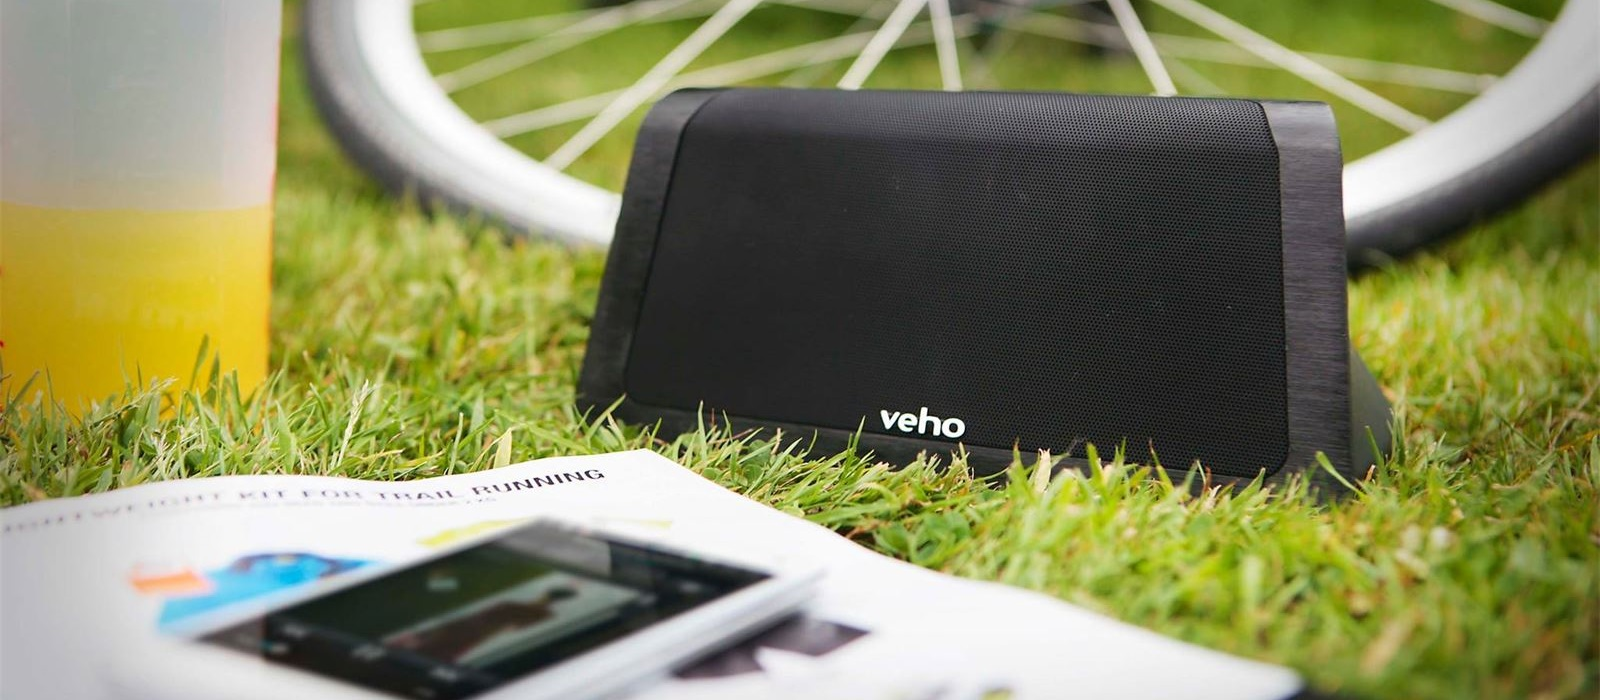 Veho 360 M5 Bluetooth Wireless Speaker - Black